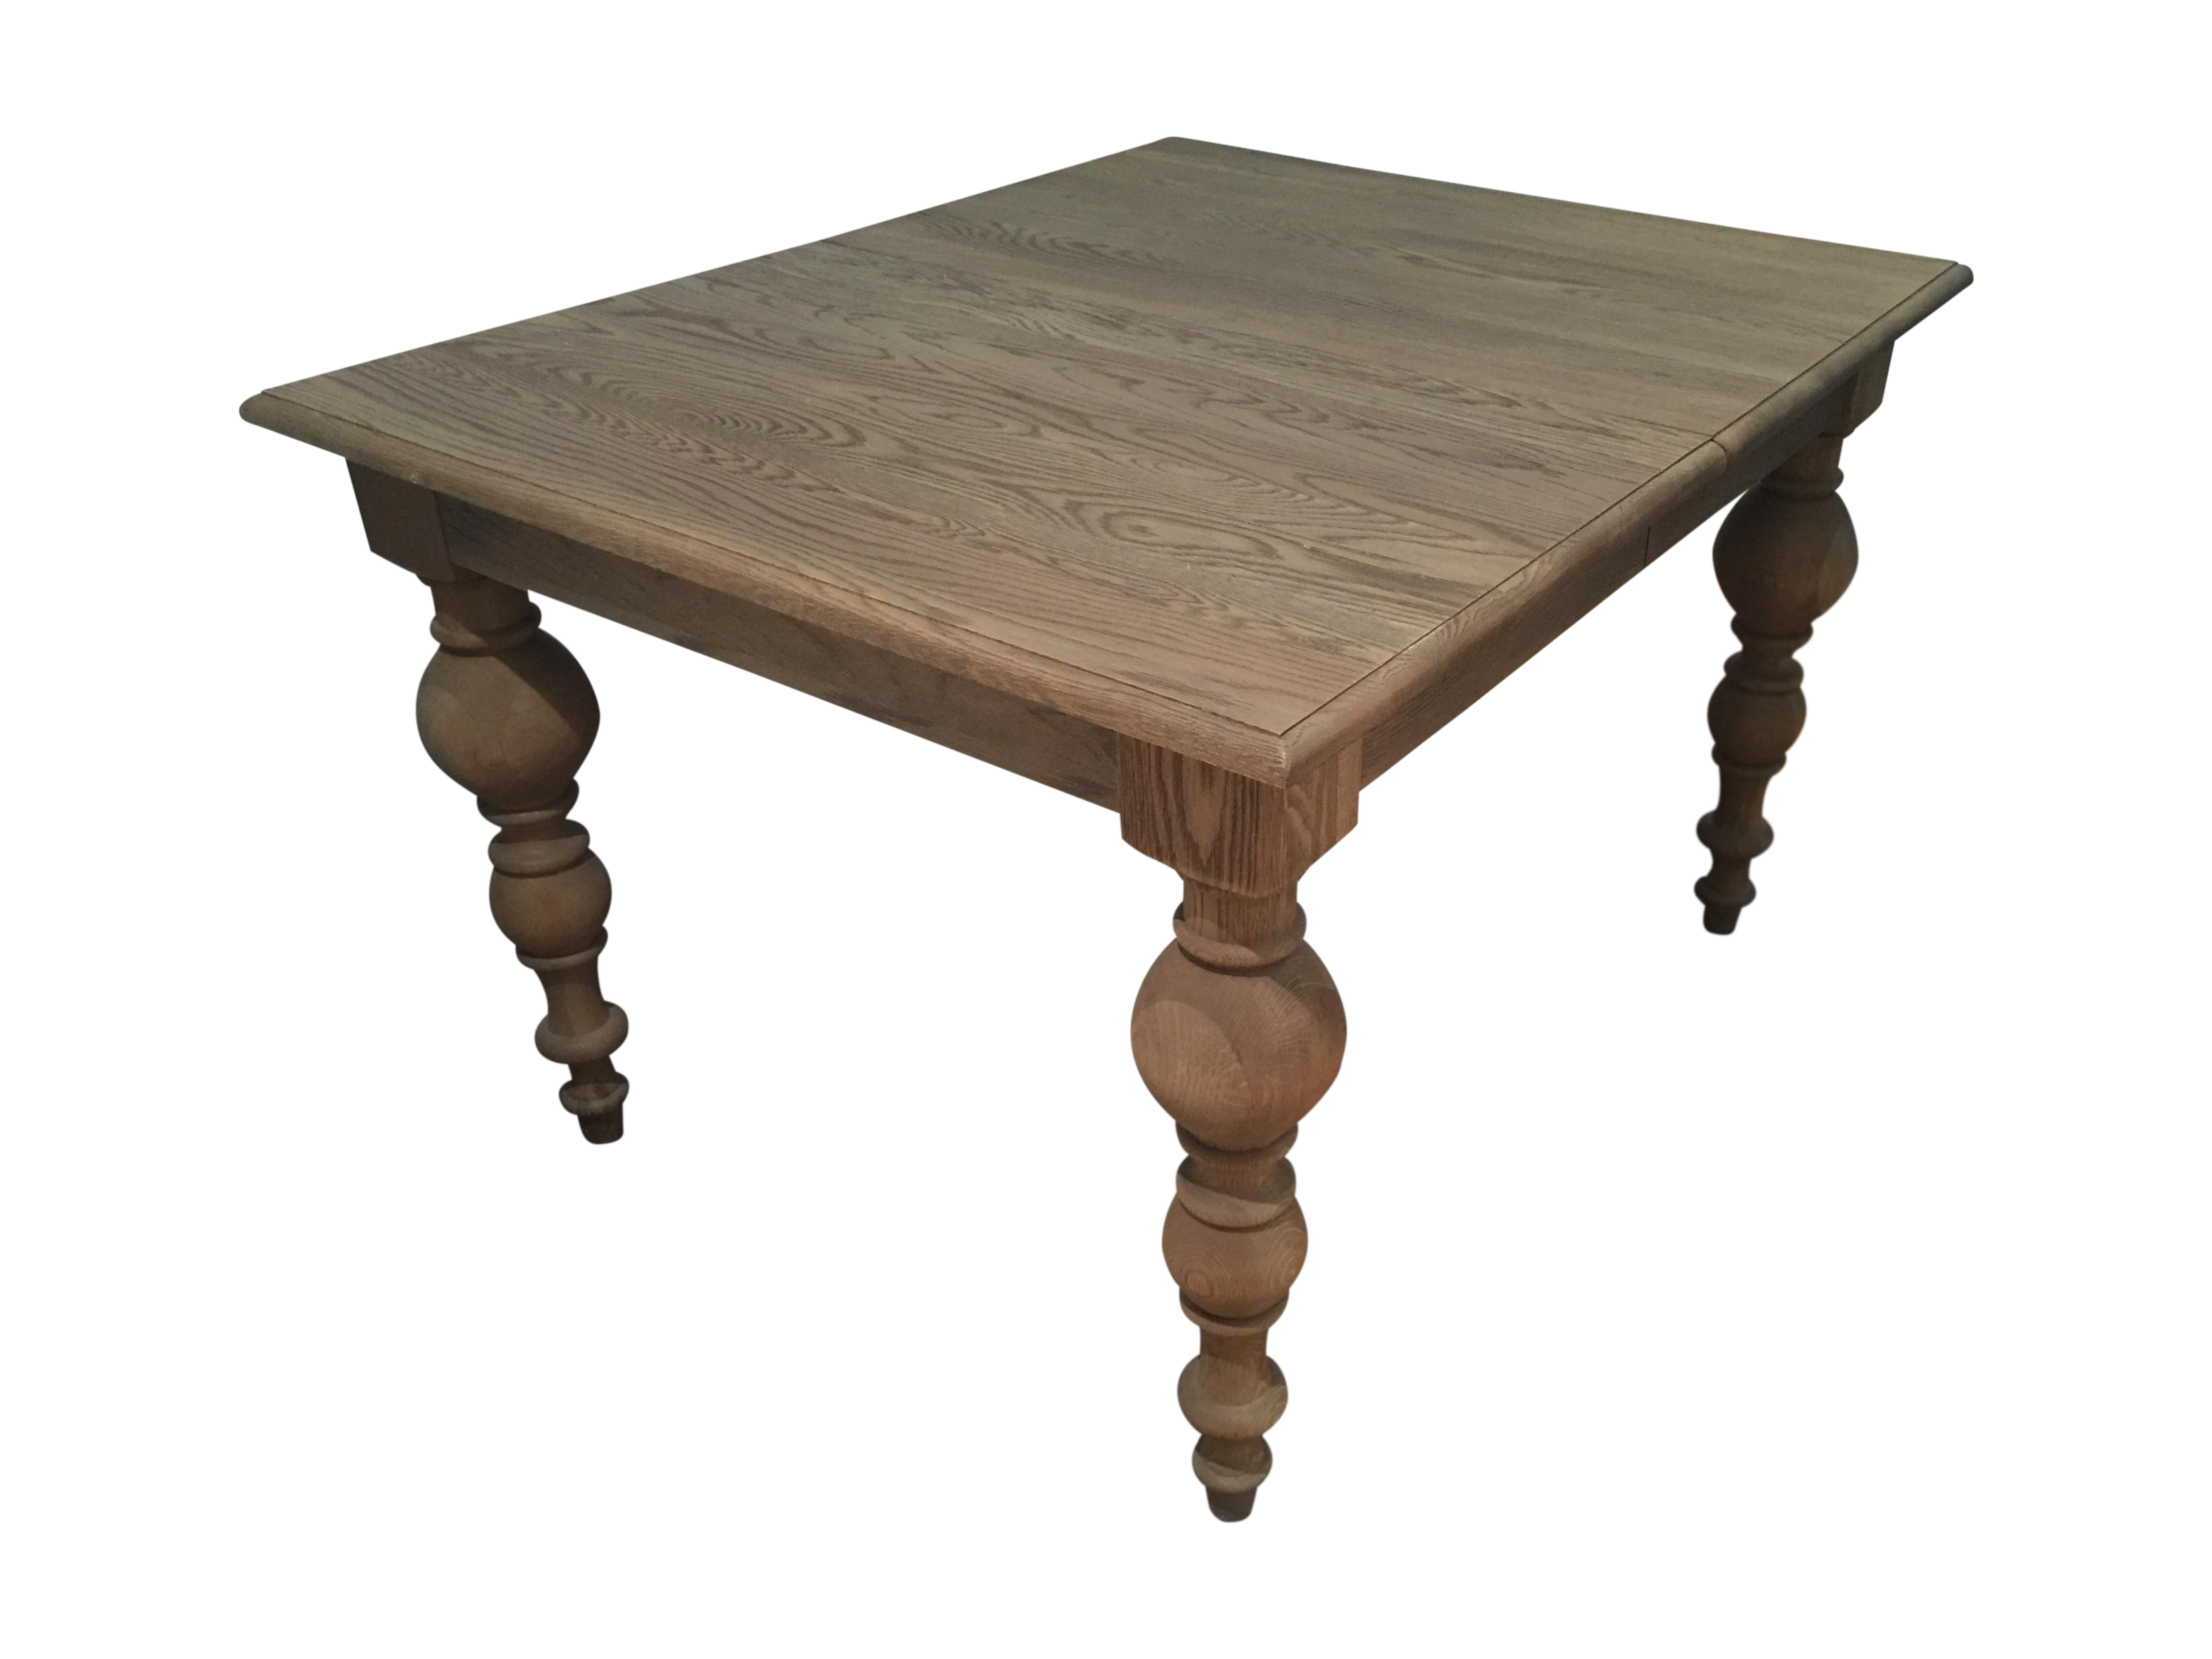 Grand Baluster Extension Dining Table by RH Chairish : 4f11afce 1d53 4bea 87e5 b2072613c9f7aspectfitampwidth640ampheight640 from www.chairish.com size 640 x 640 jpeg 22kB